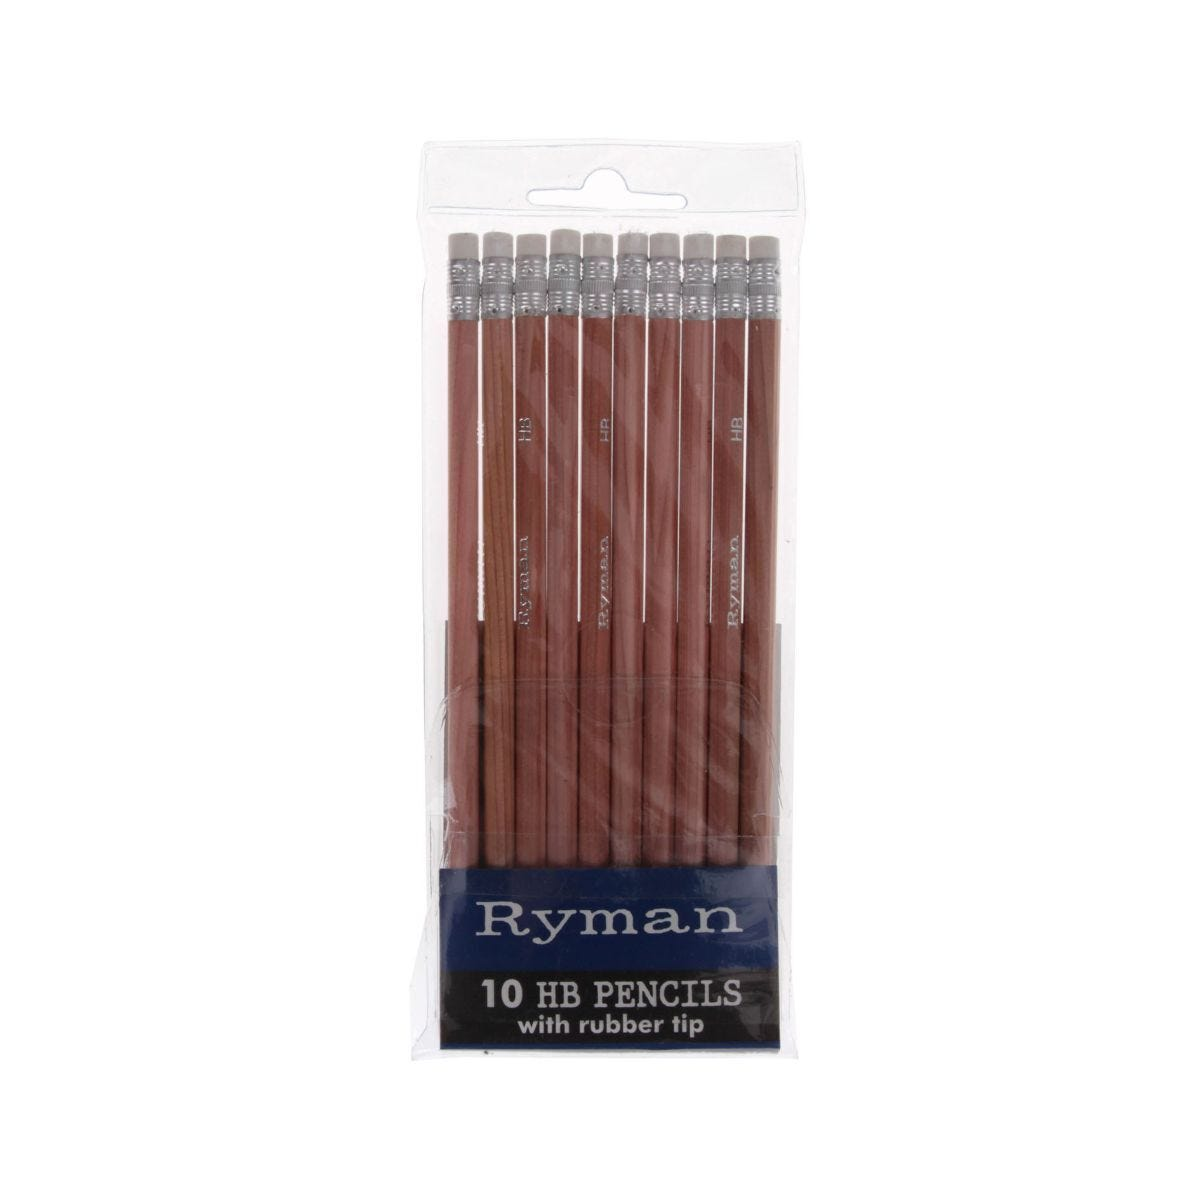 Ryman Pencils Pack 100 HB Rubber Tipped